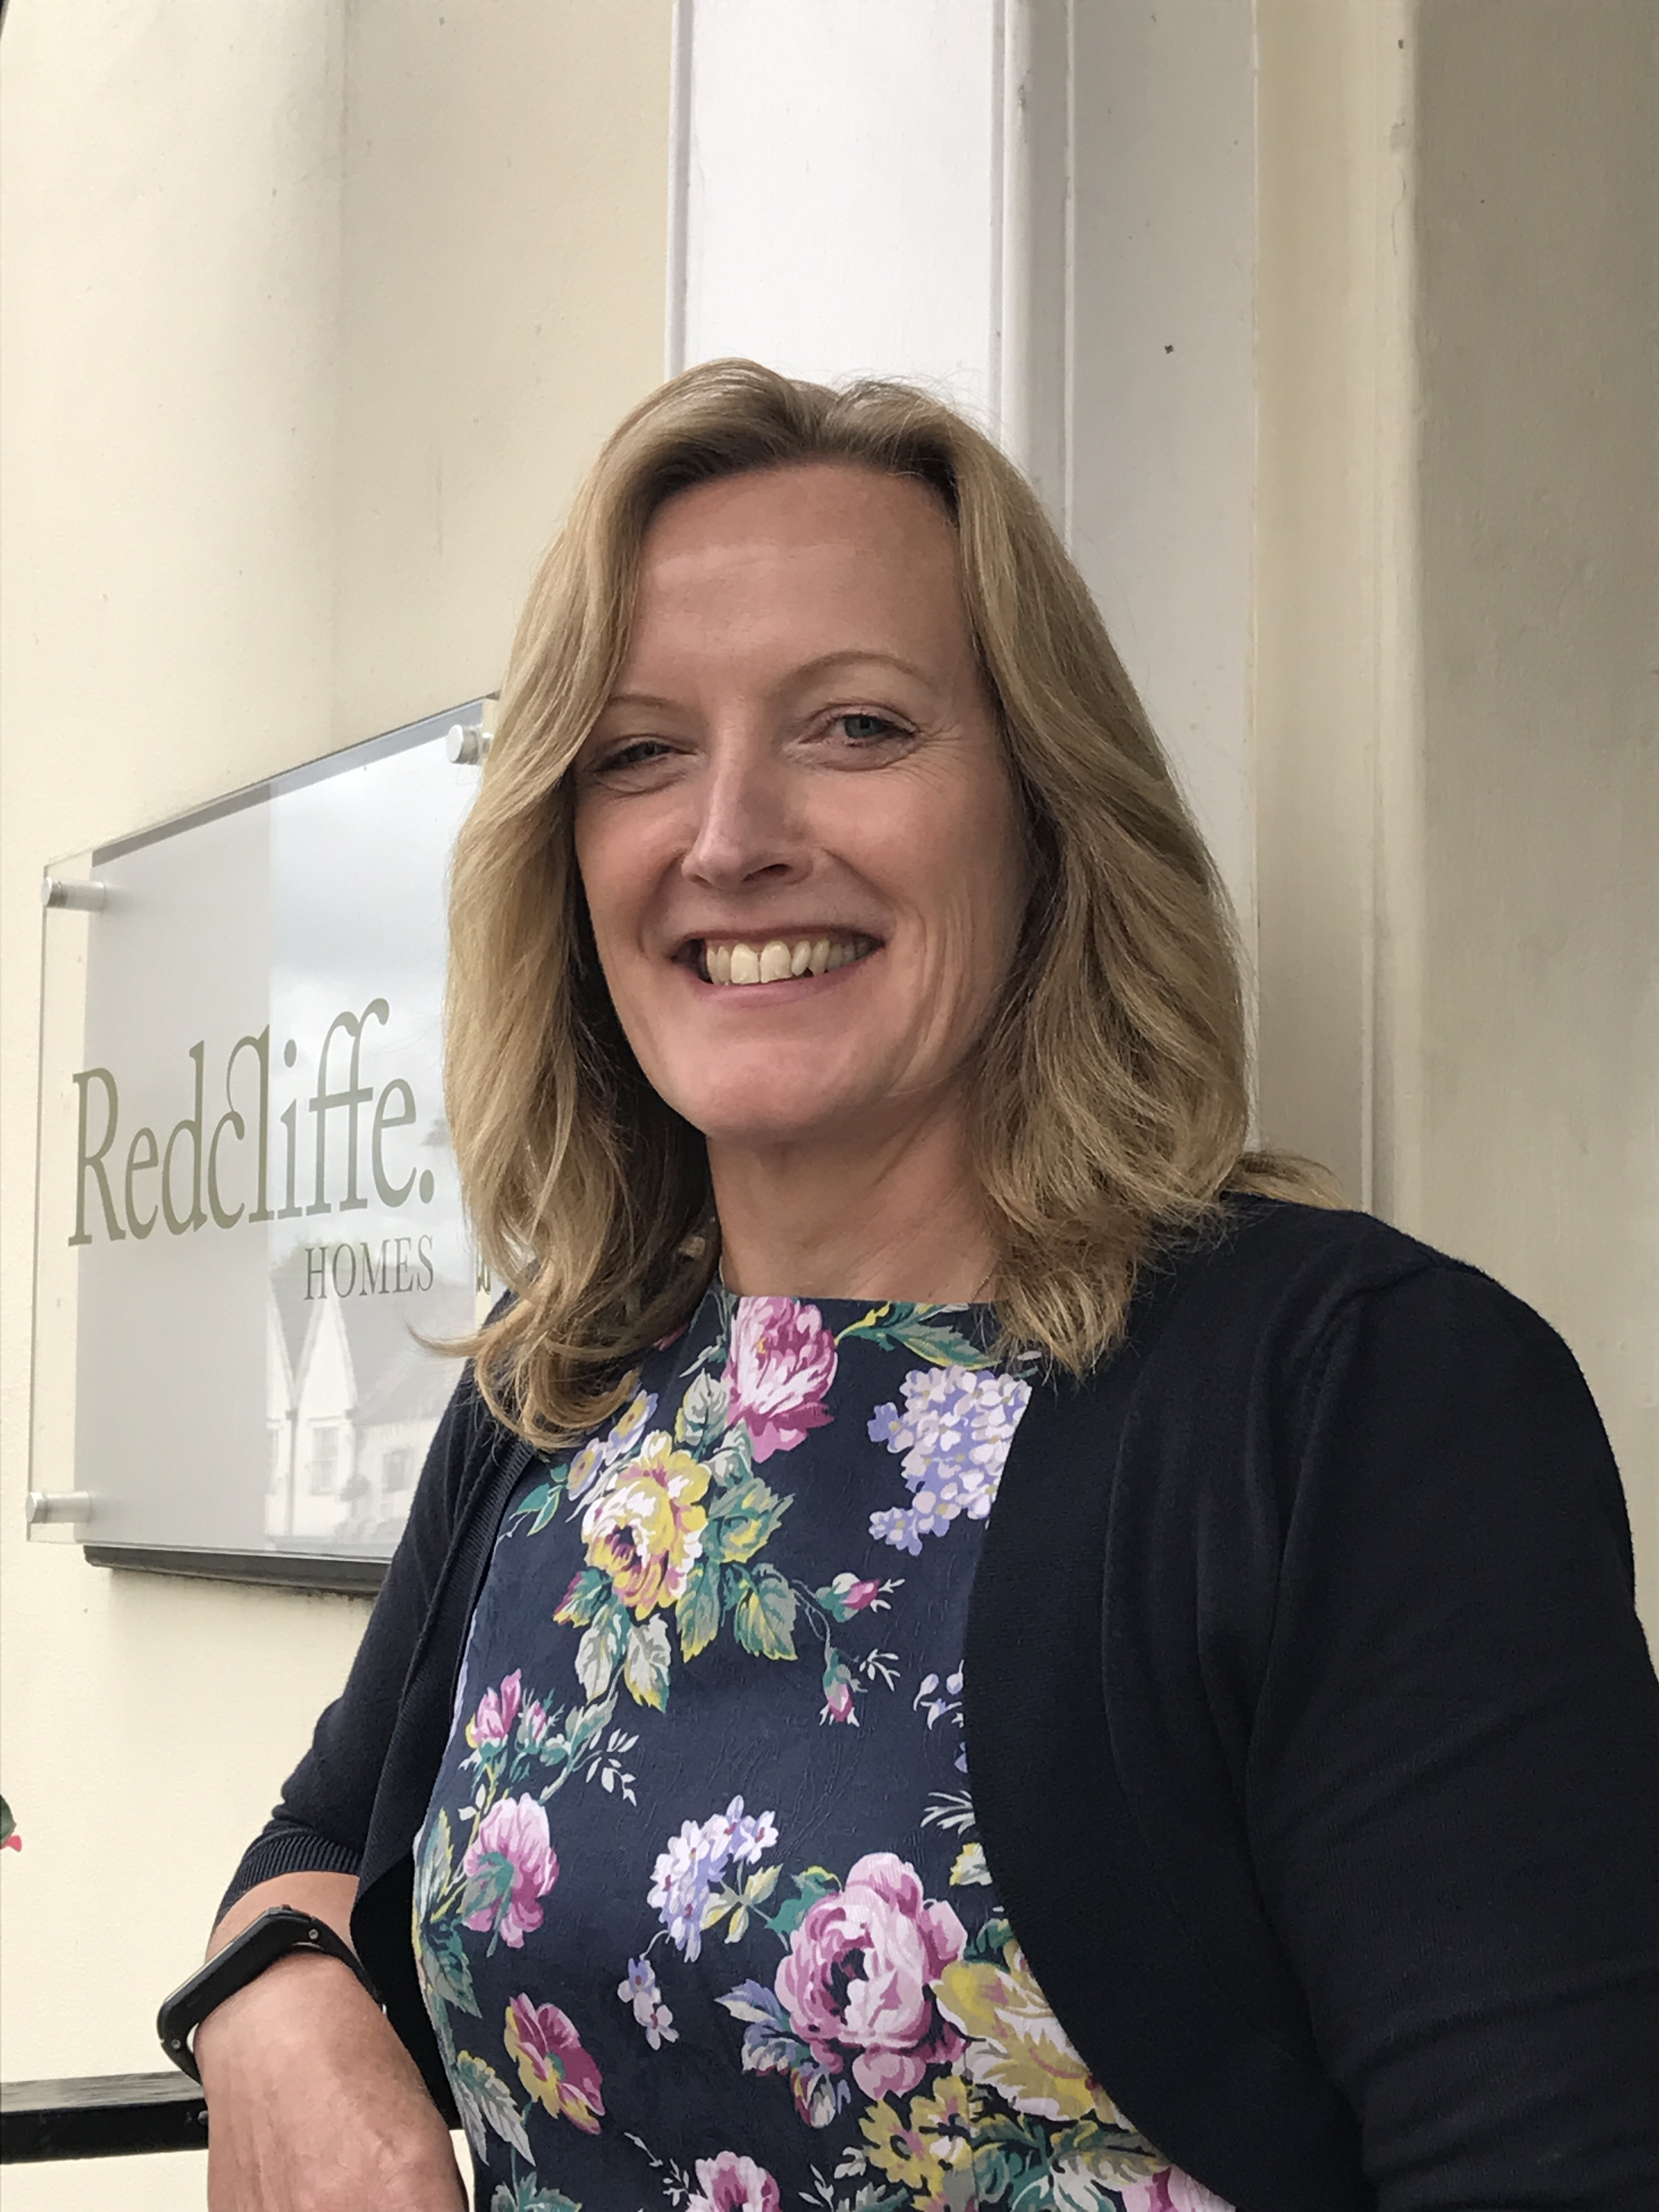 New Development Co-ordinator joins Redcliffe Homes